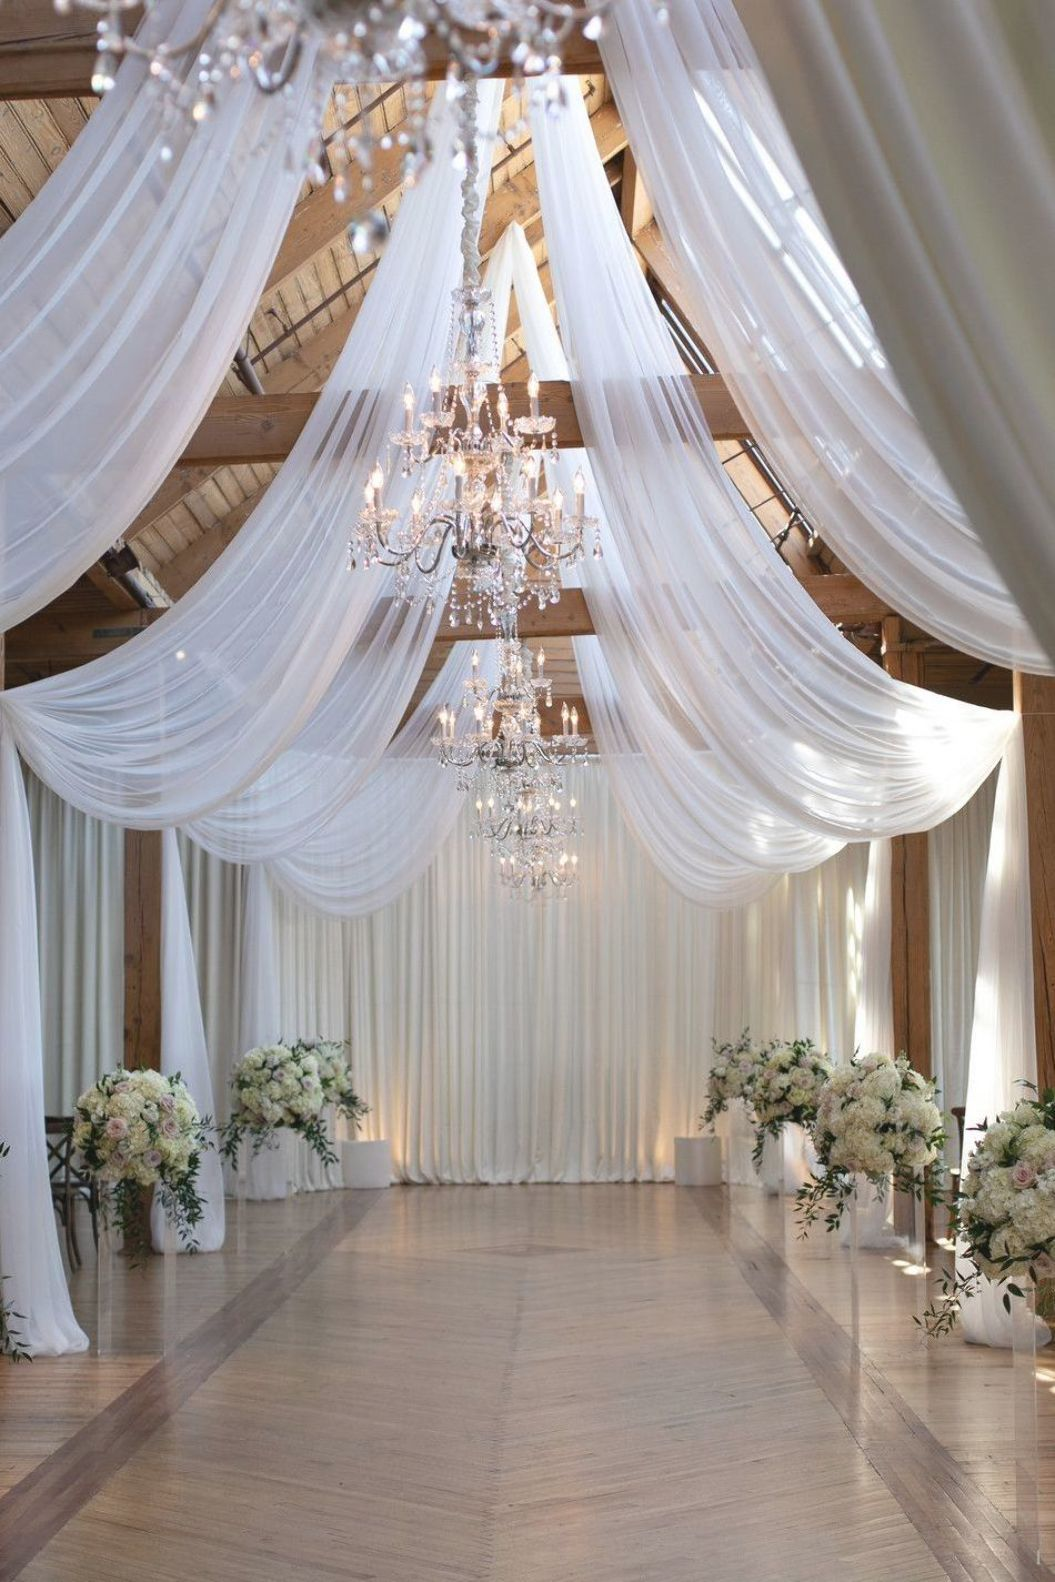 Pin By Lally On Wedding In 2020 White Wedding Ceremony Wedding Ceremony Decorations Wedding Drapery